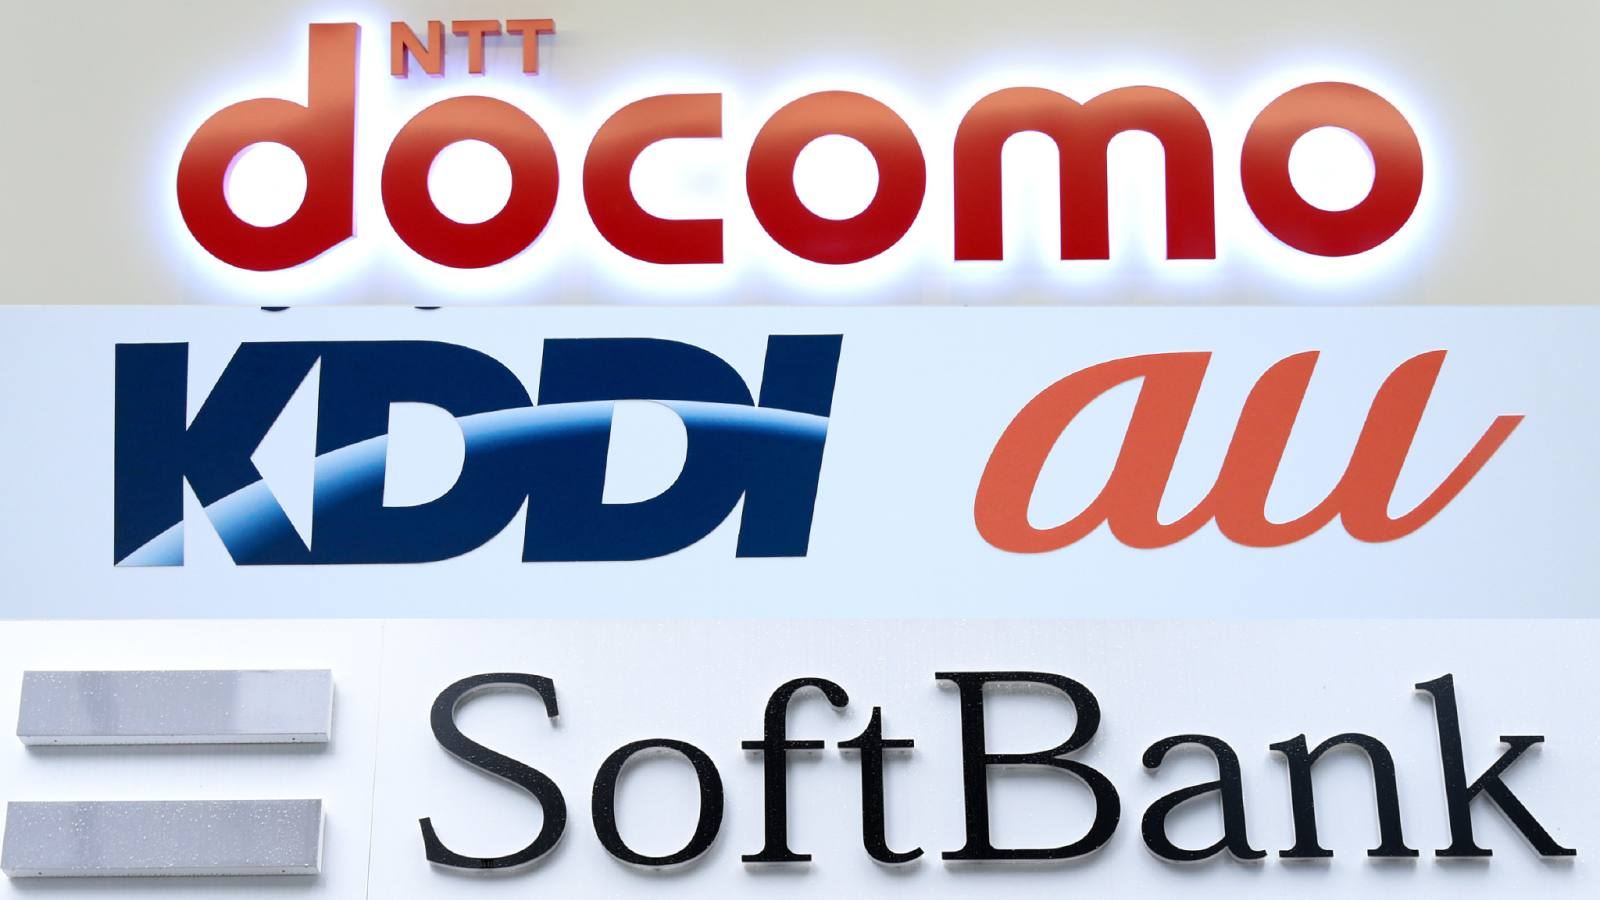 NTT Docomo and KDDI have decided to follow the lead of SoftBank in deciding not to use Chinese equipment in their 5G networks due to rising security concerns.